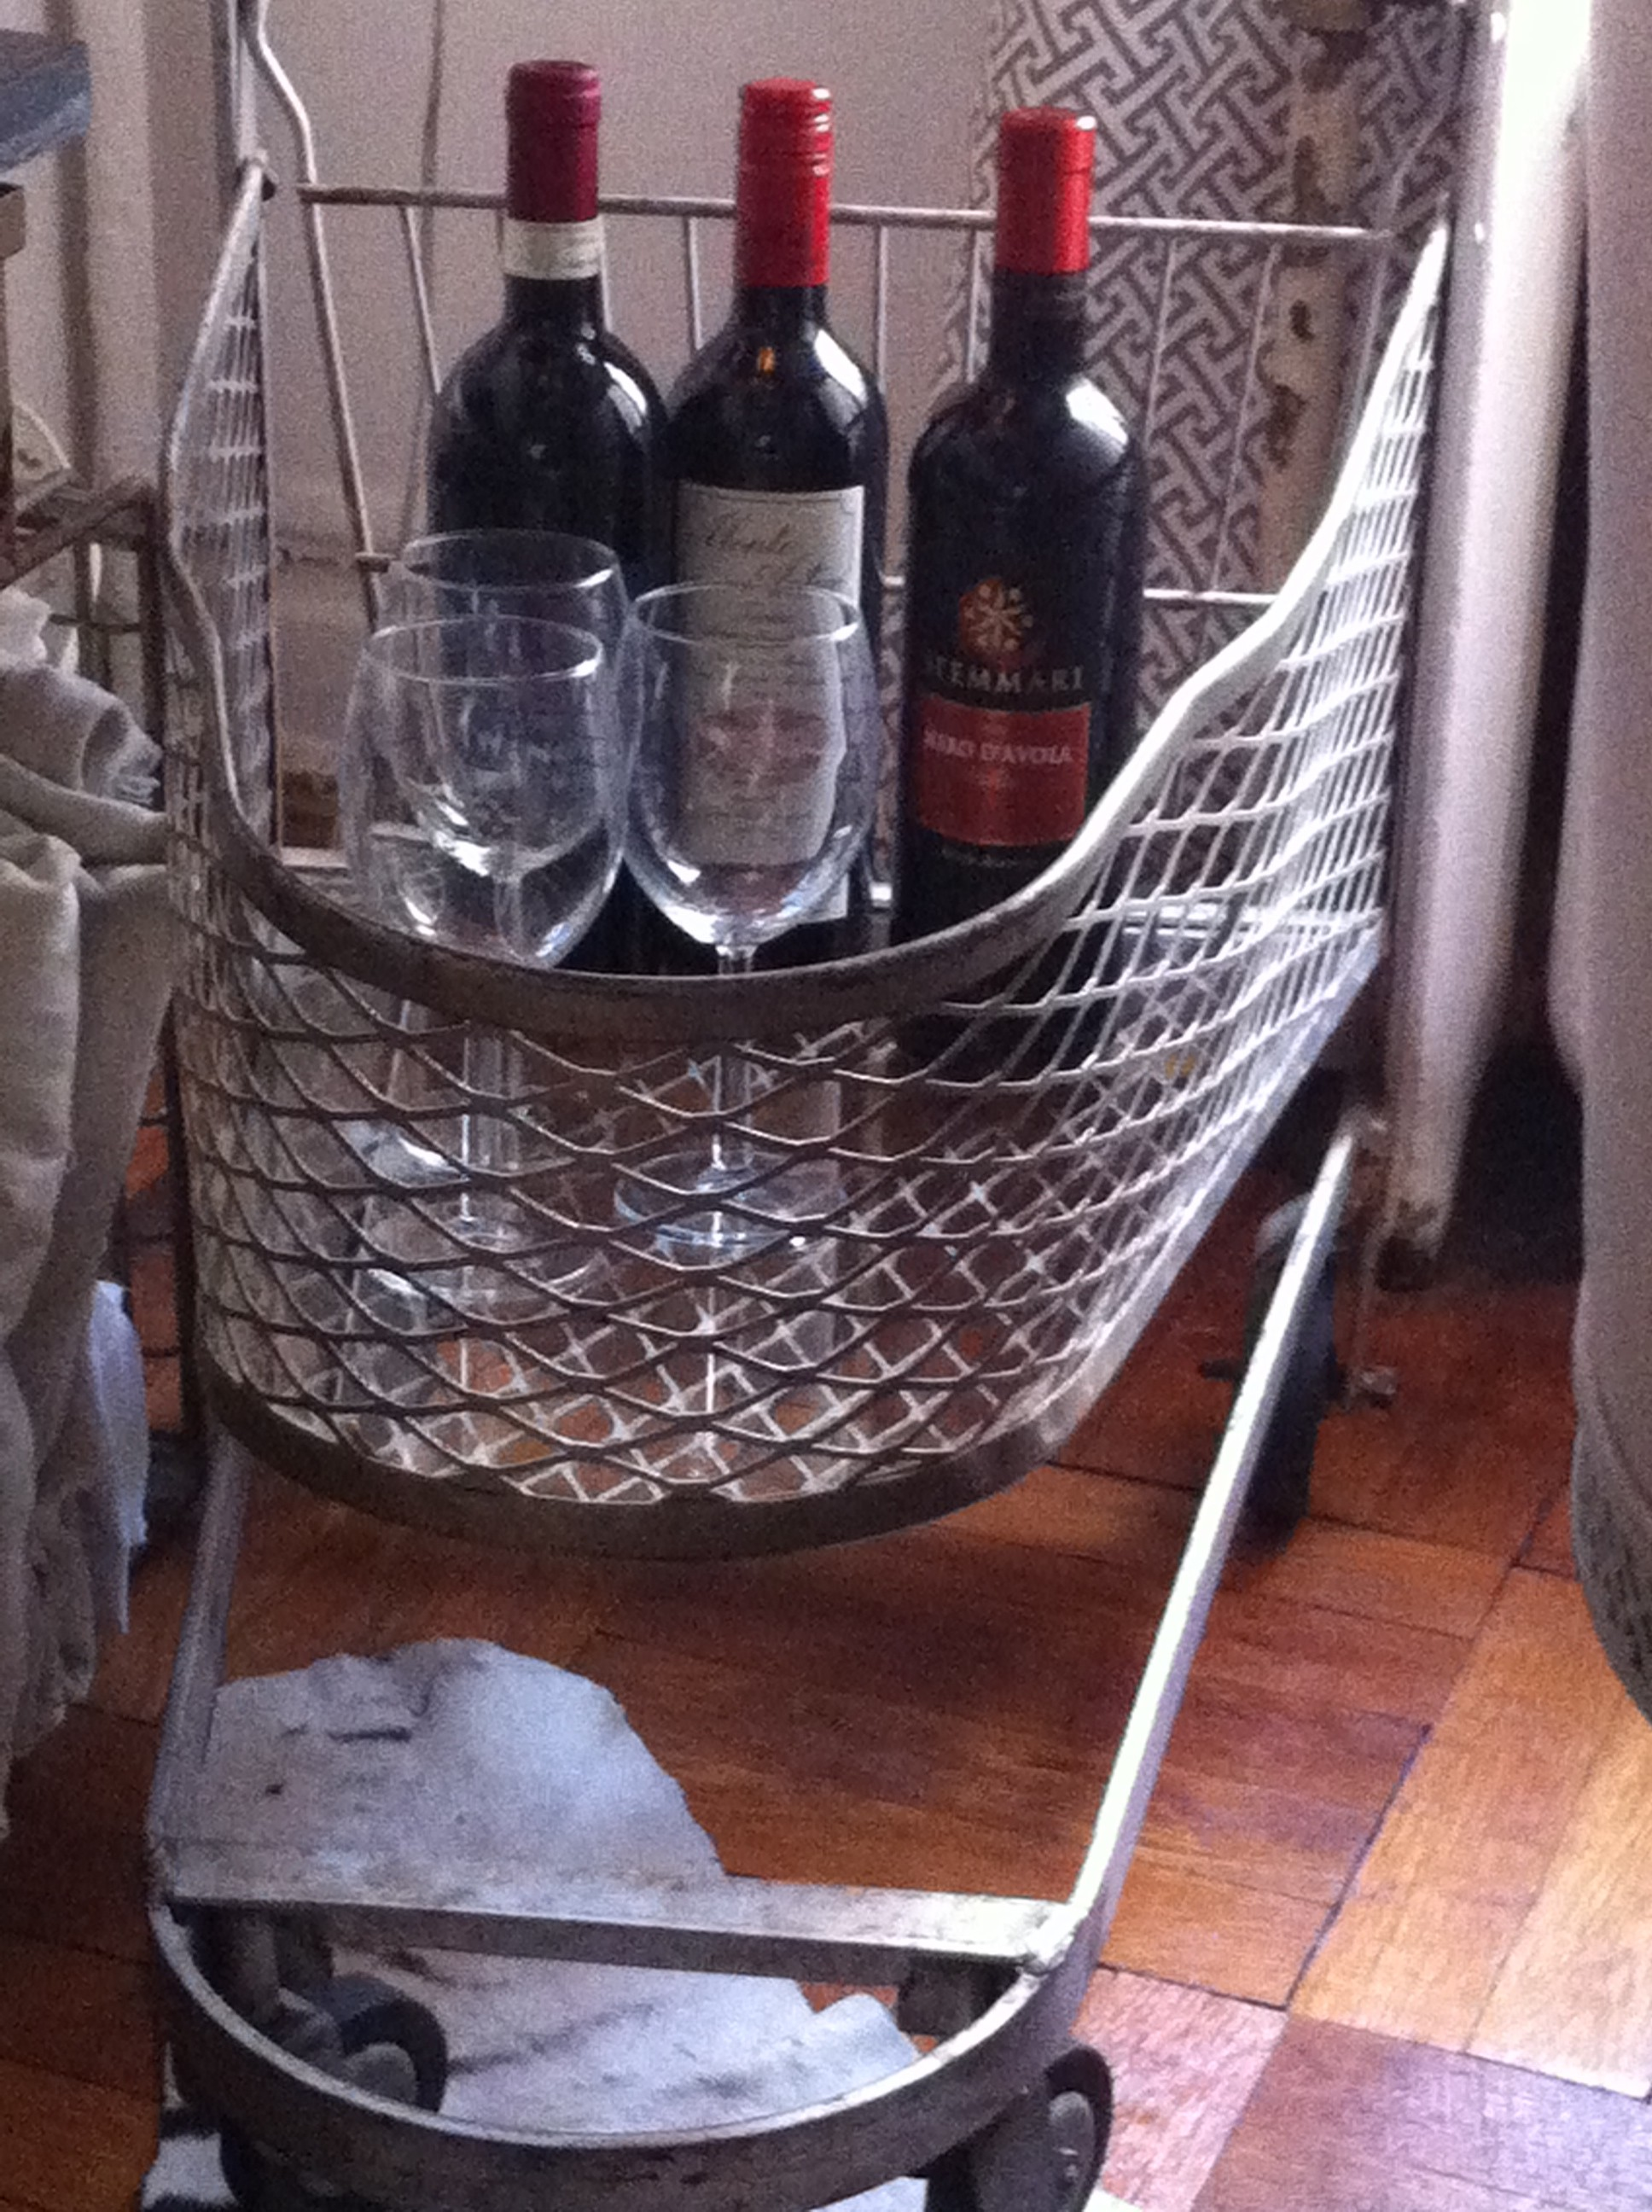 A pic of the lower tier of the repurposed bar cart